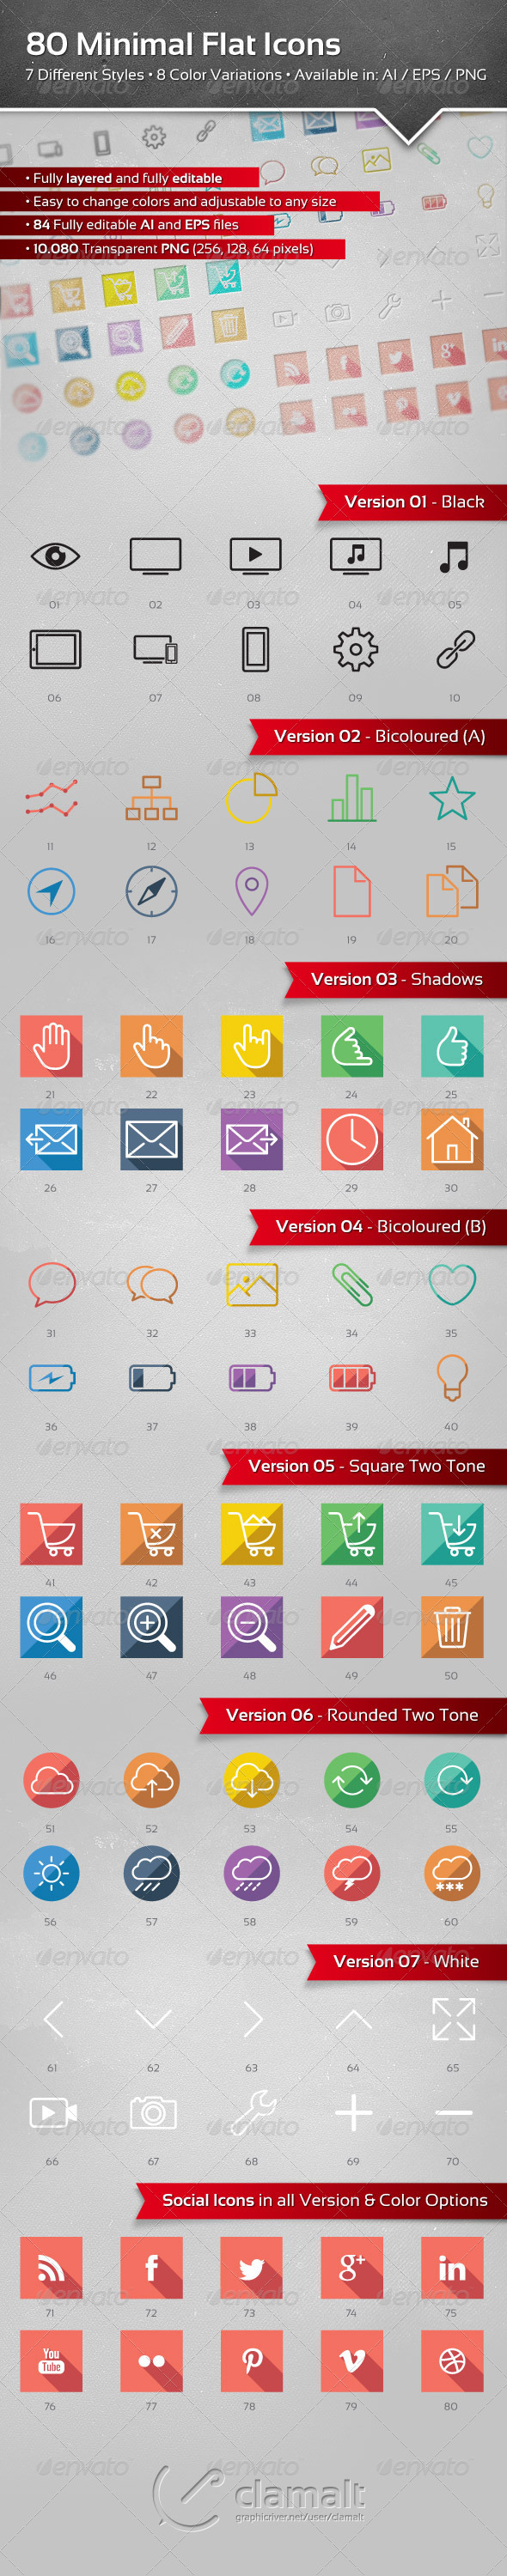 GraphicRiver 80 Minimal Flat Icons 5223652